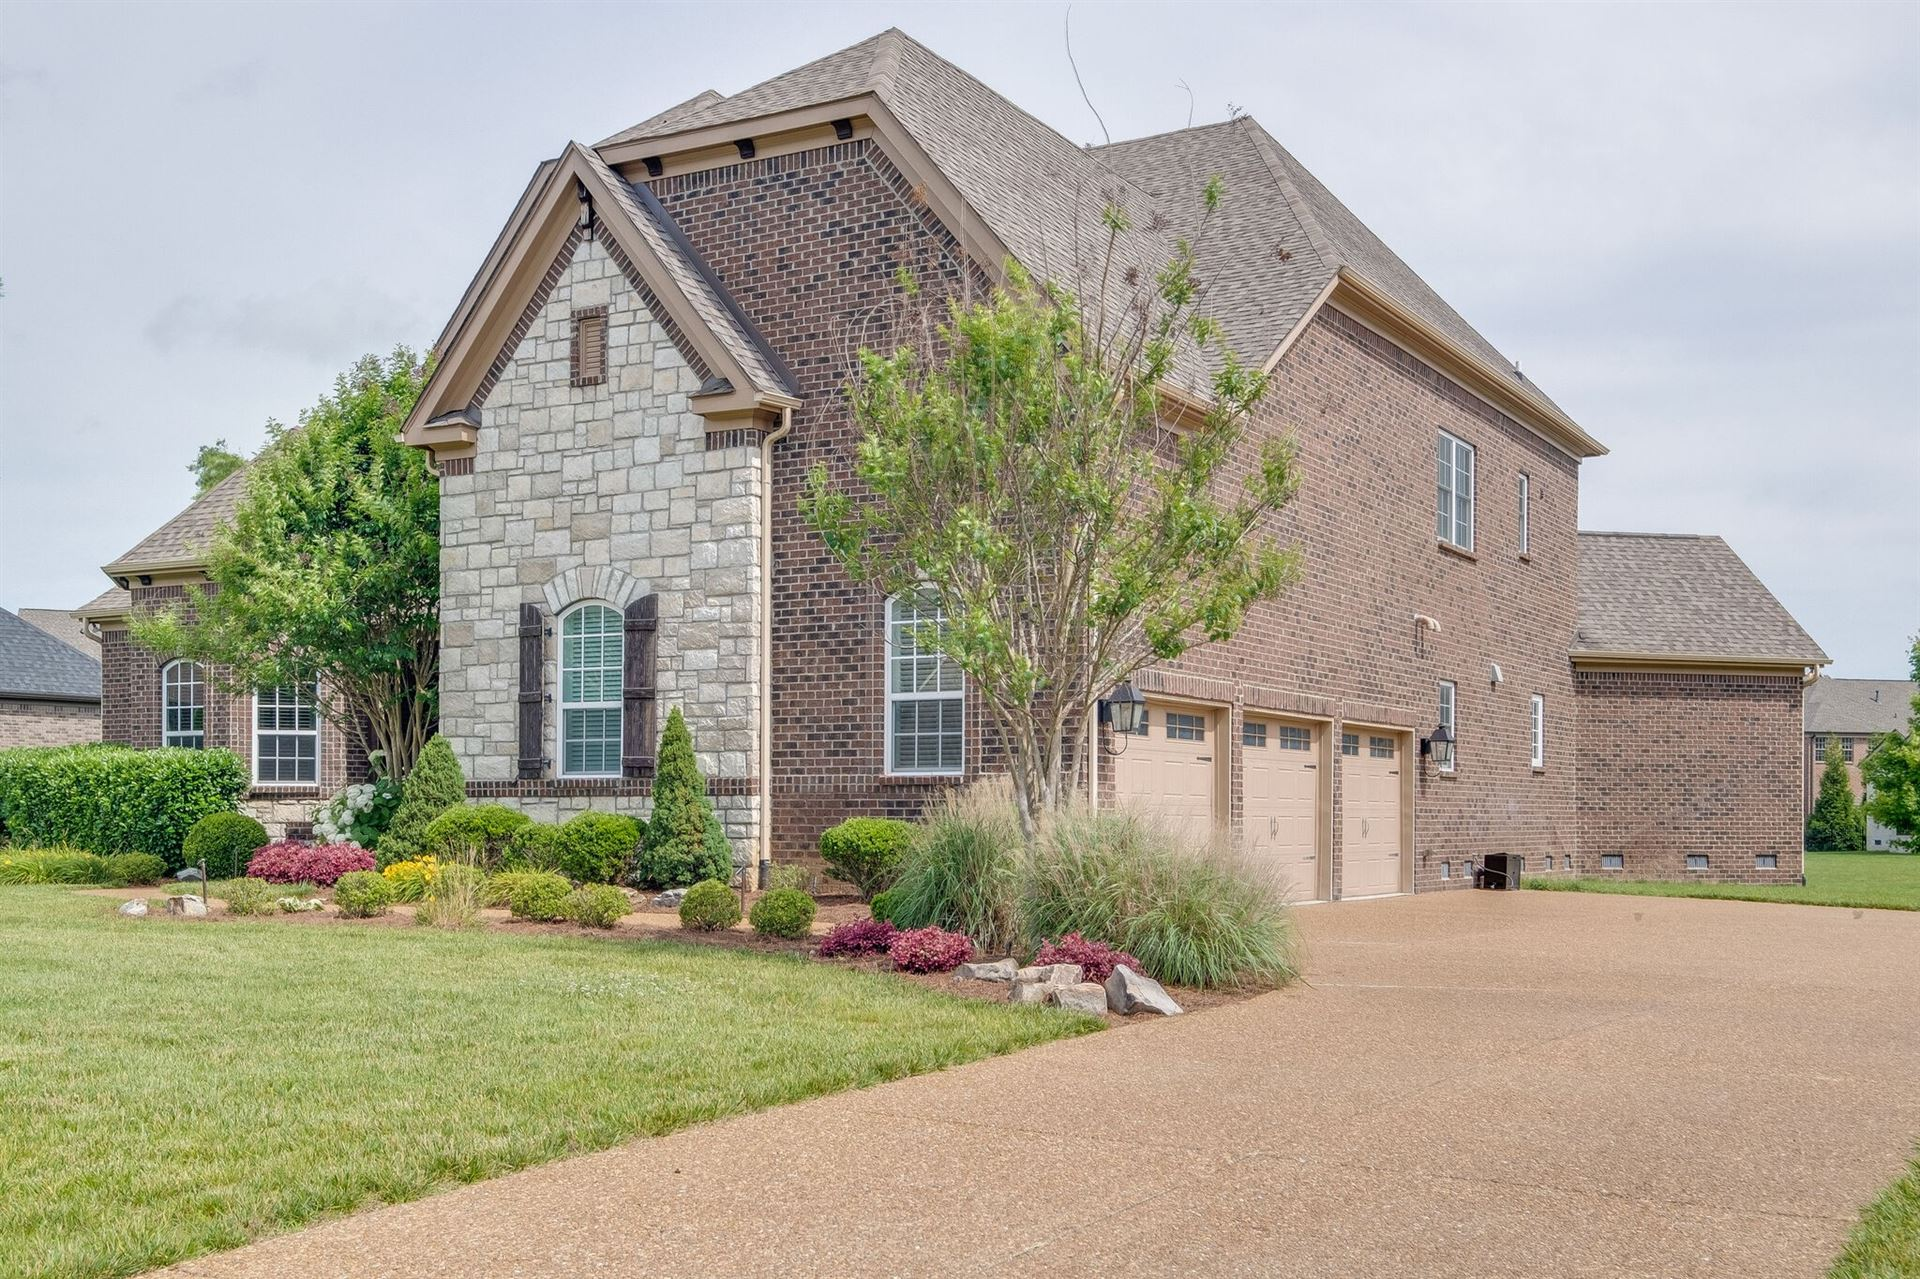 Photo of 9490 Elgin Way, Brentwood, TN 37027 (MLS # 2205302)